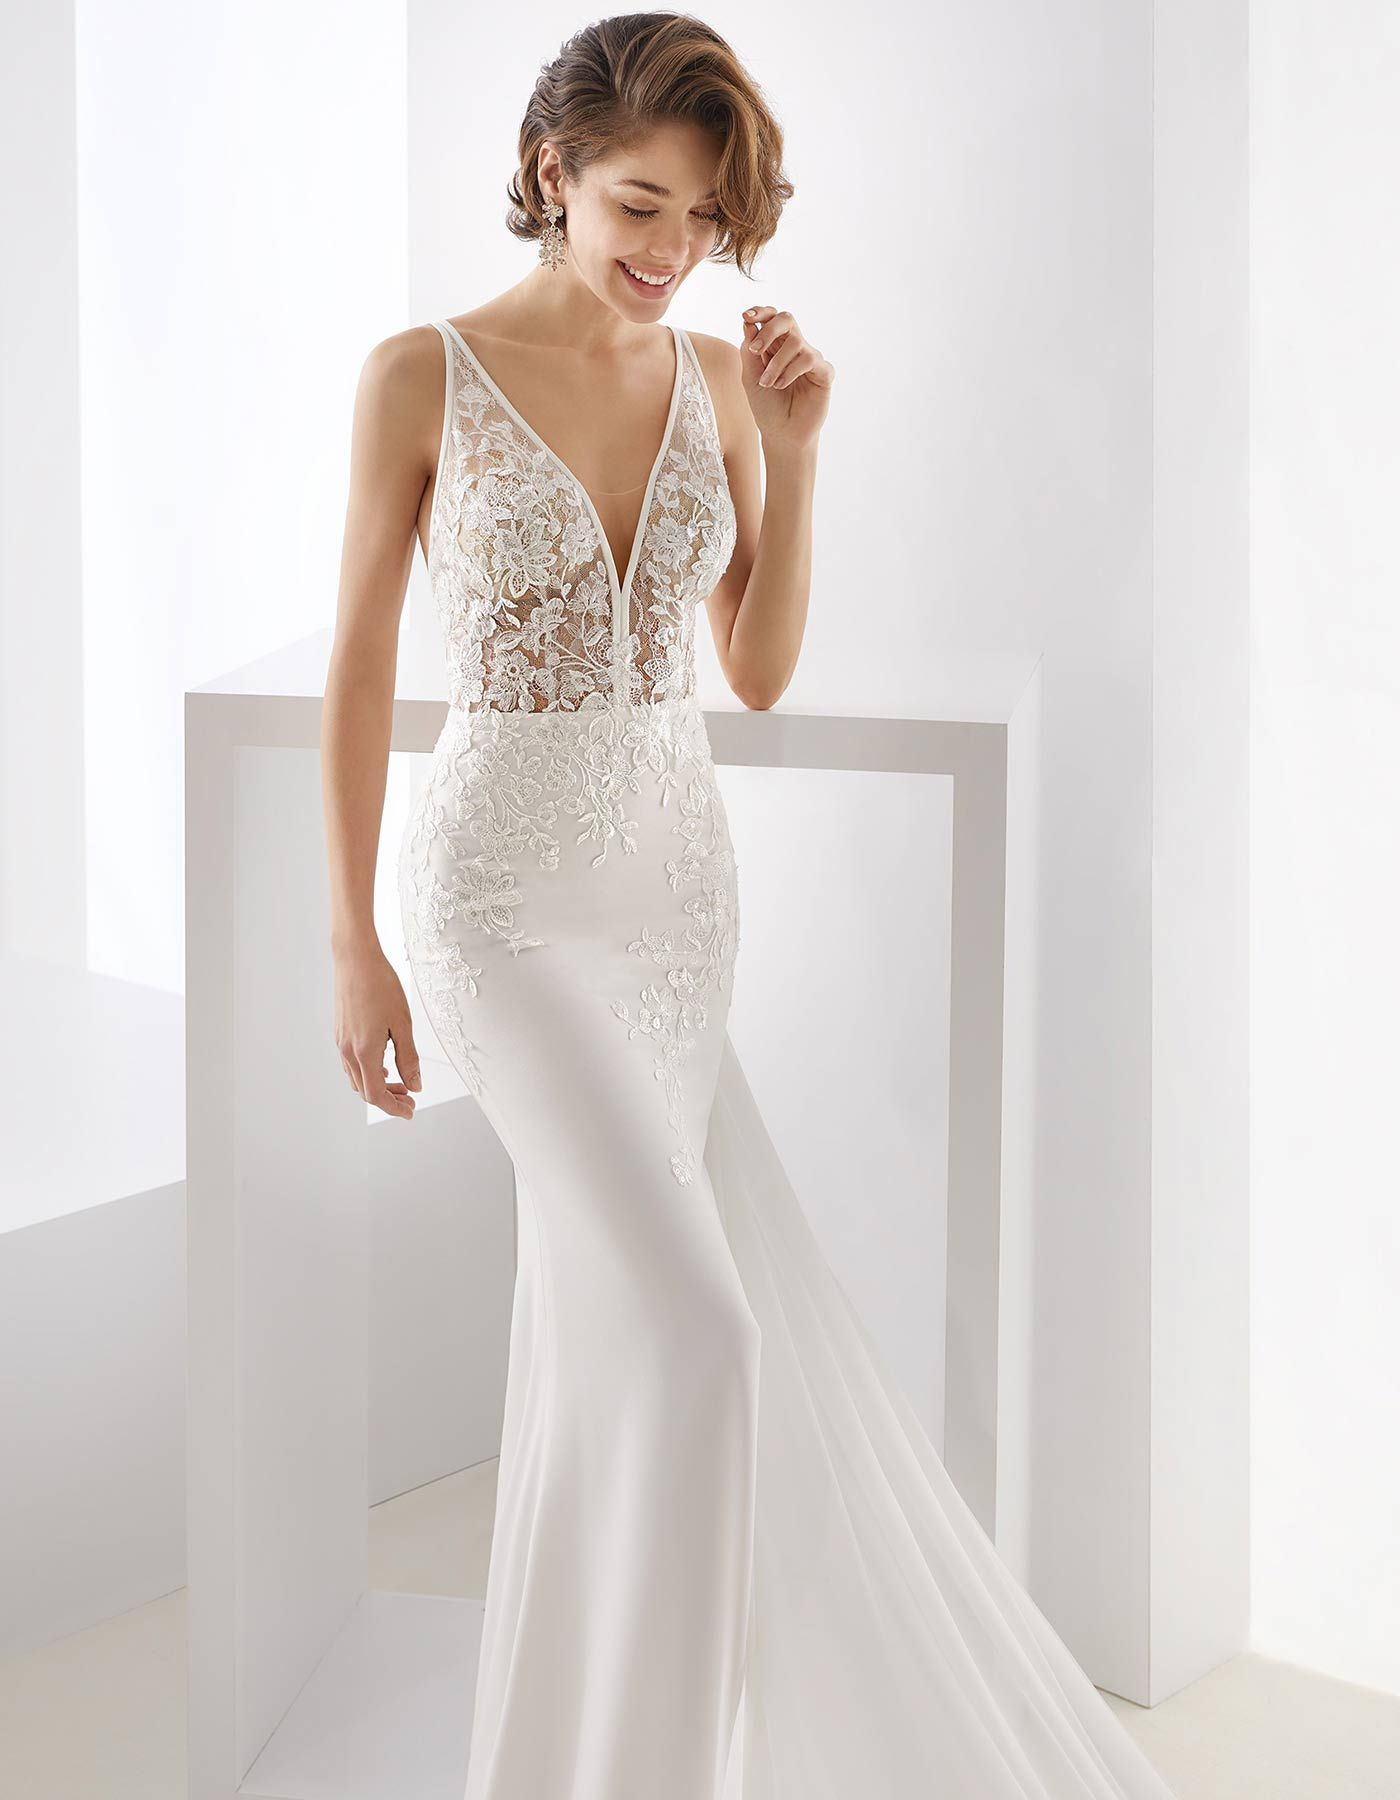 5cb8d72ec7f2 Elegant ivory mermaid dress in cady, sequin beaded rebrode lace, Chantilly  lace and tulle. For a daring woman, with a touch of sophistication.